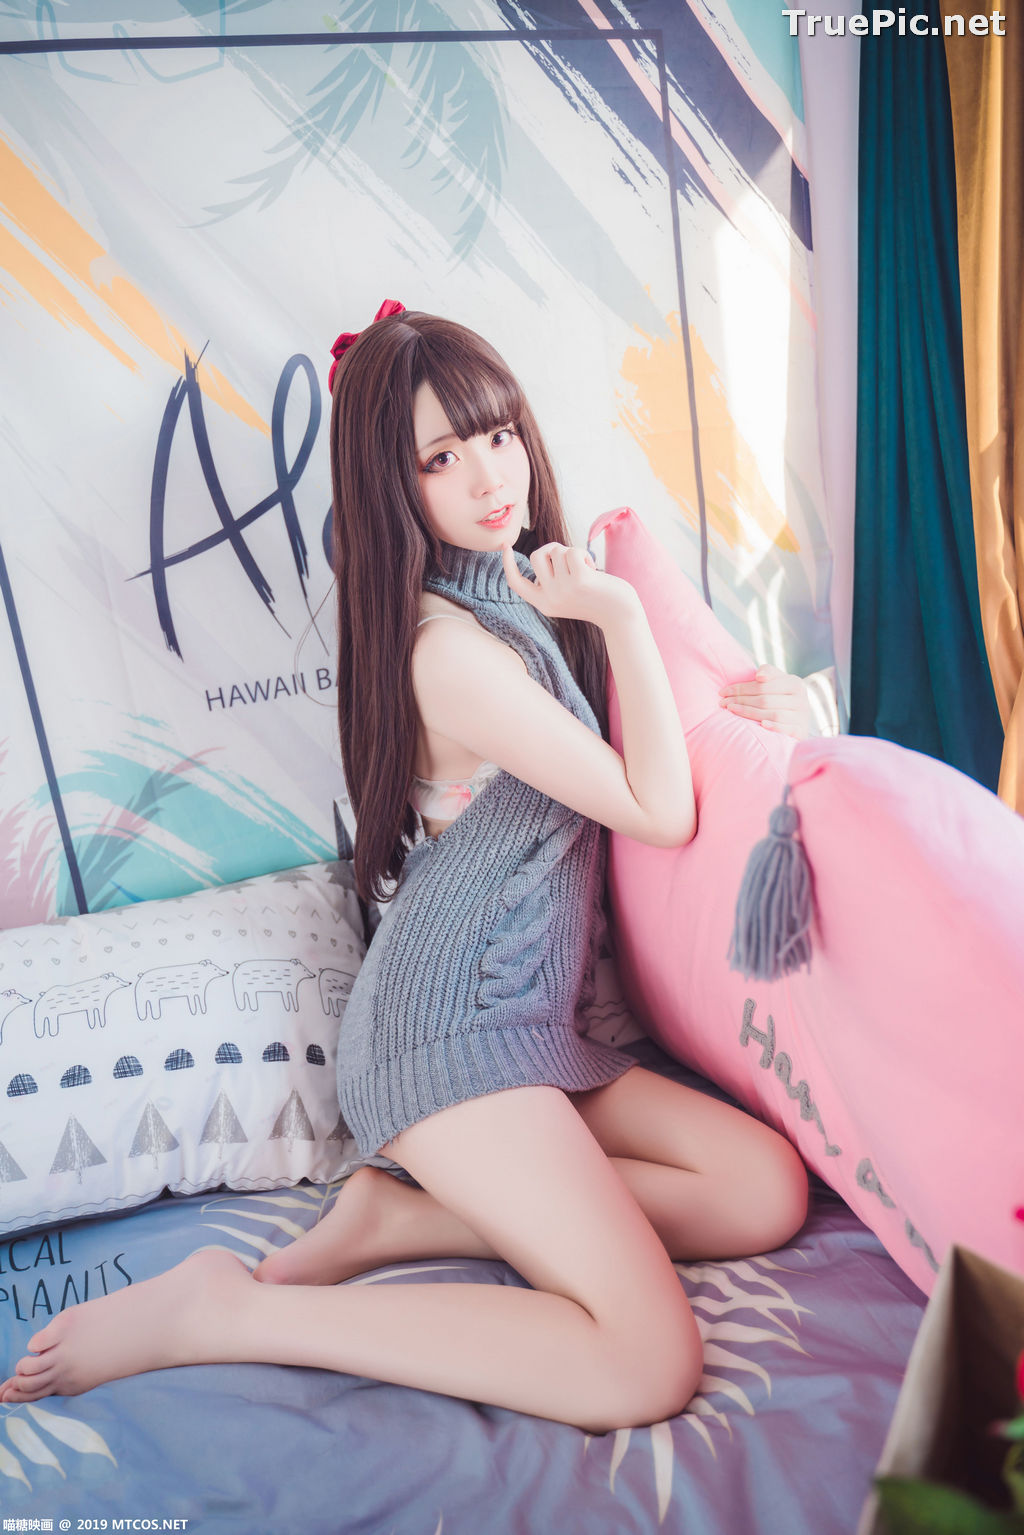 Image [MTCos] 喵糖映画 Vol.030 – Chinese Cute Model – Open Back Sweater - TruePic.net - Picture-7